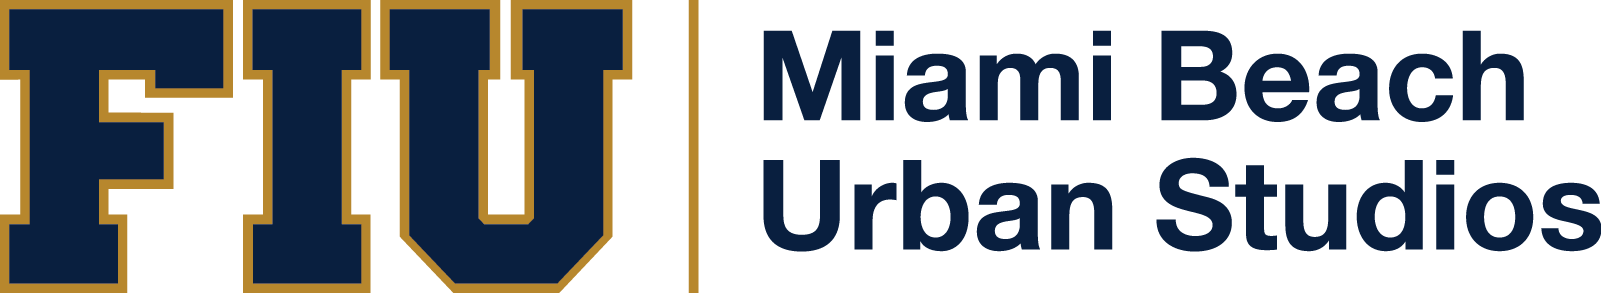 Miami Beach Urban Studios Logo